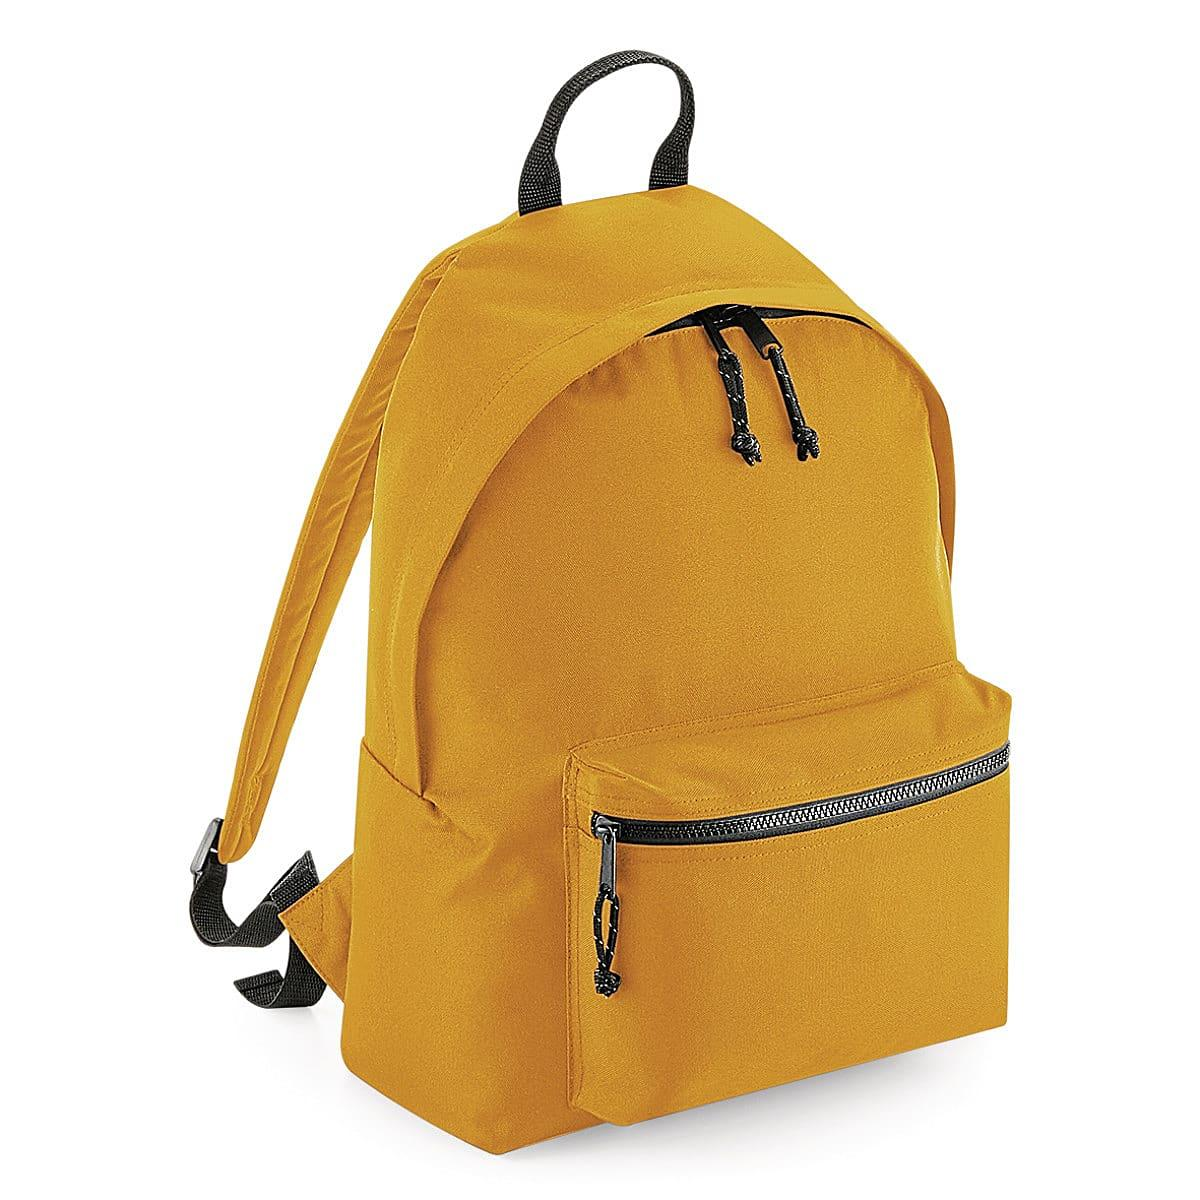 Bagbase Recycled Backpack in Mustard (Product Code: BG285)